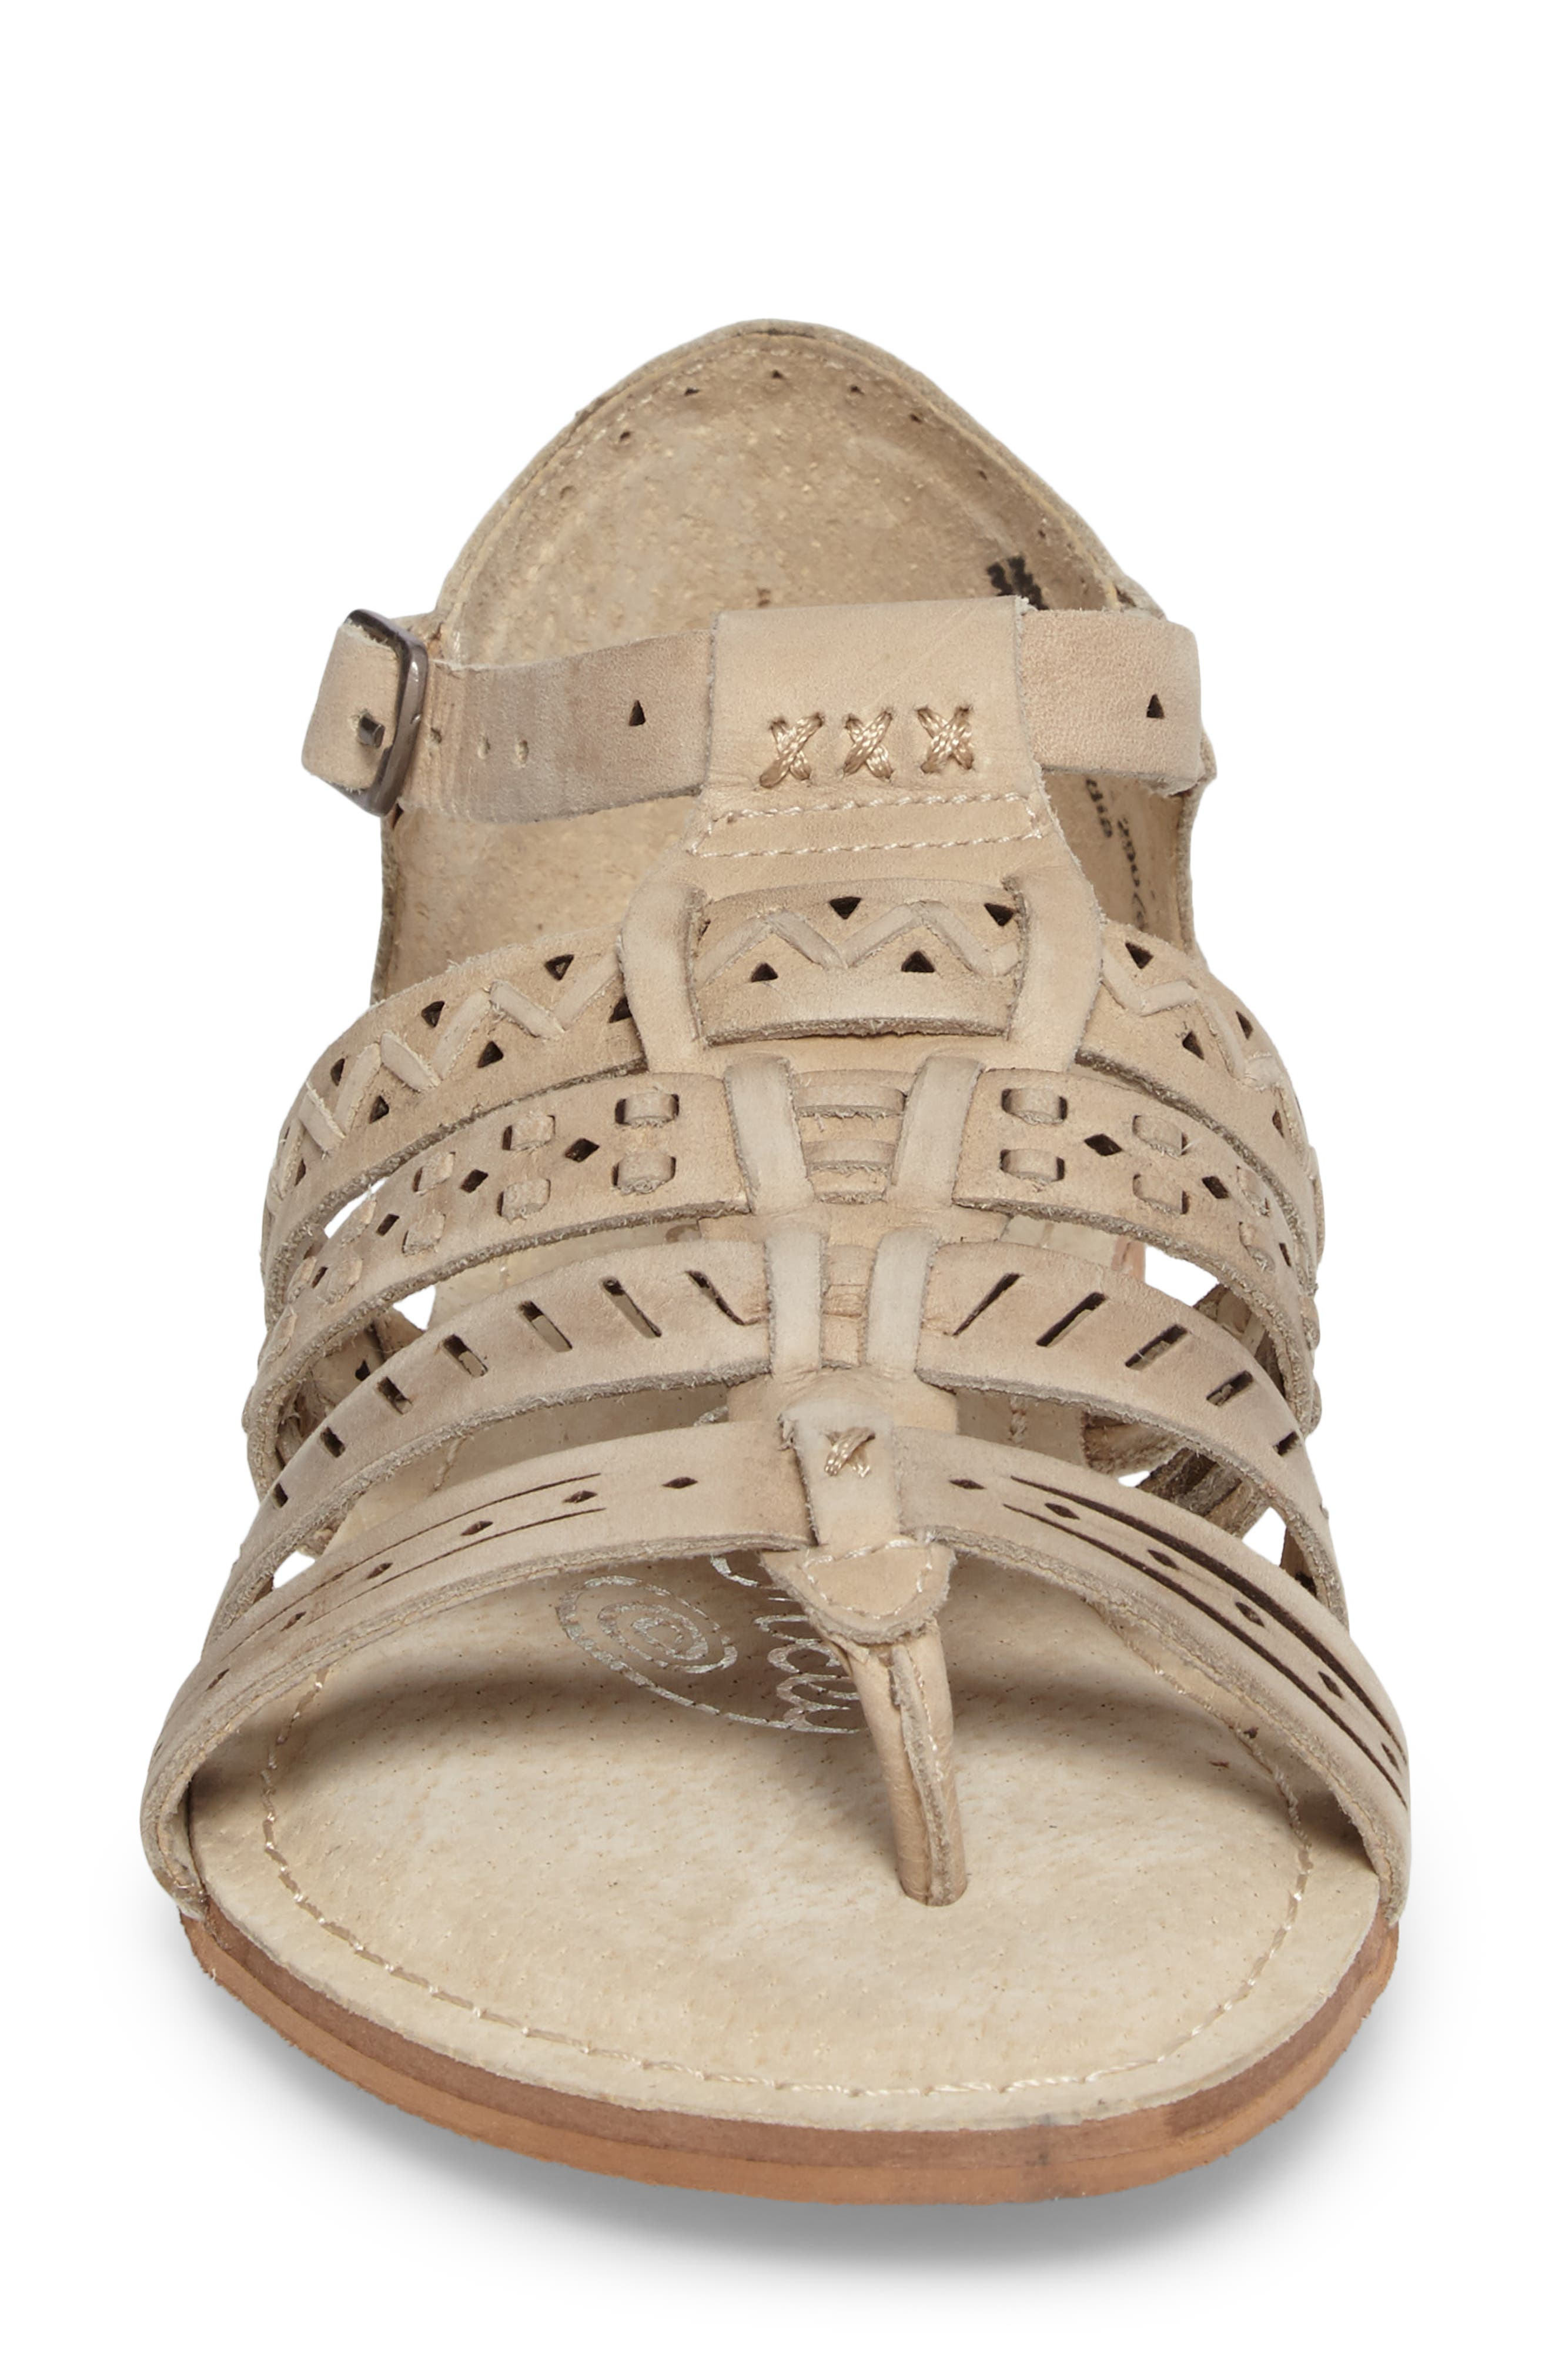 True Grit Perforated Sandal,                             Alternate thumbnail 4, color,                             Cream Leather